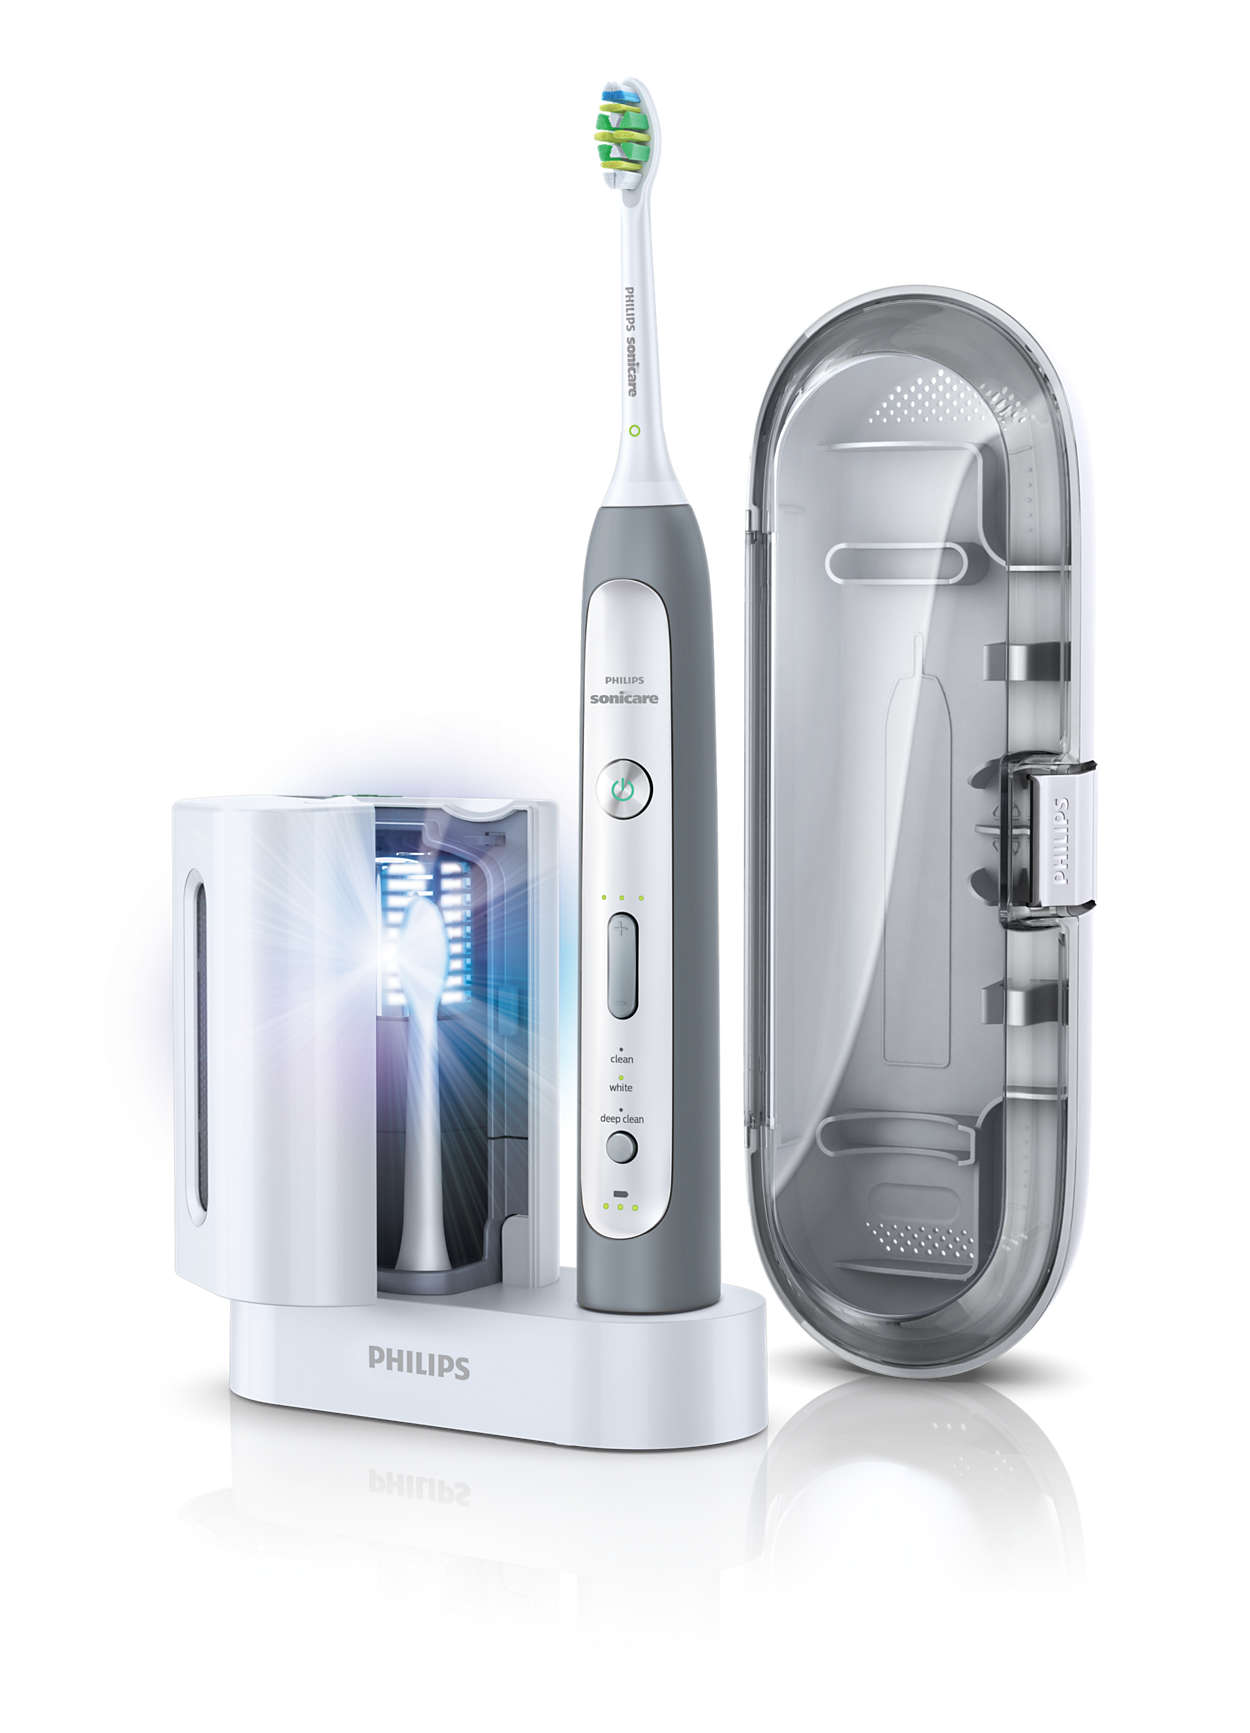 Flexcare platinum sonic electric toothbrush hx9110/02 | sonicare.